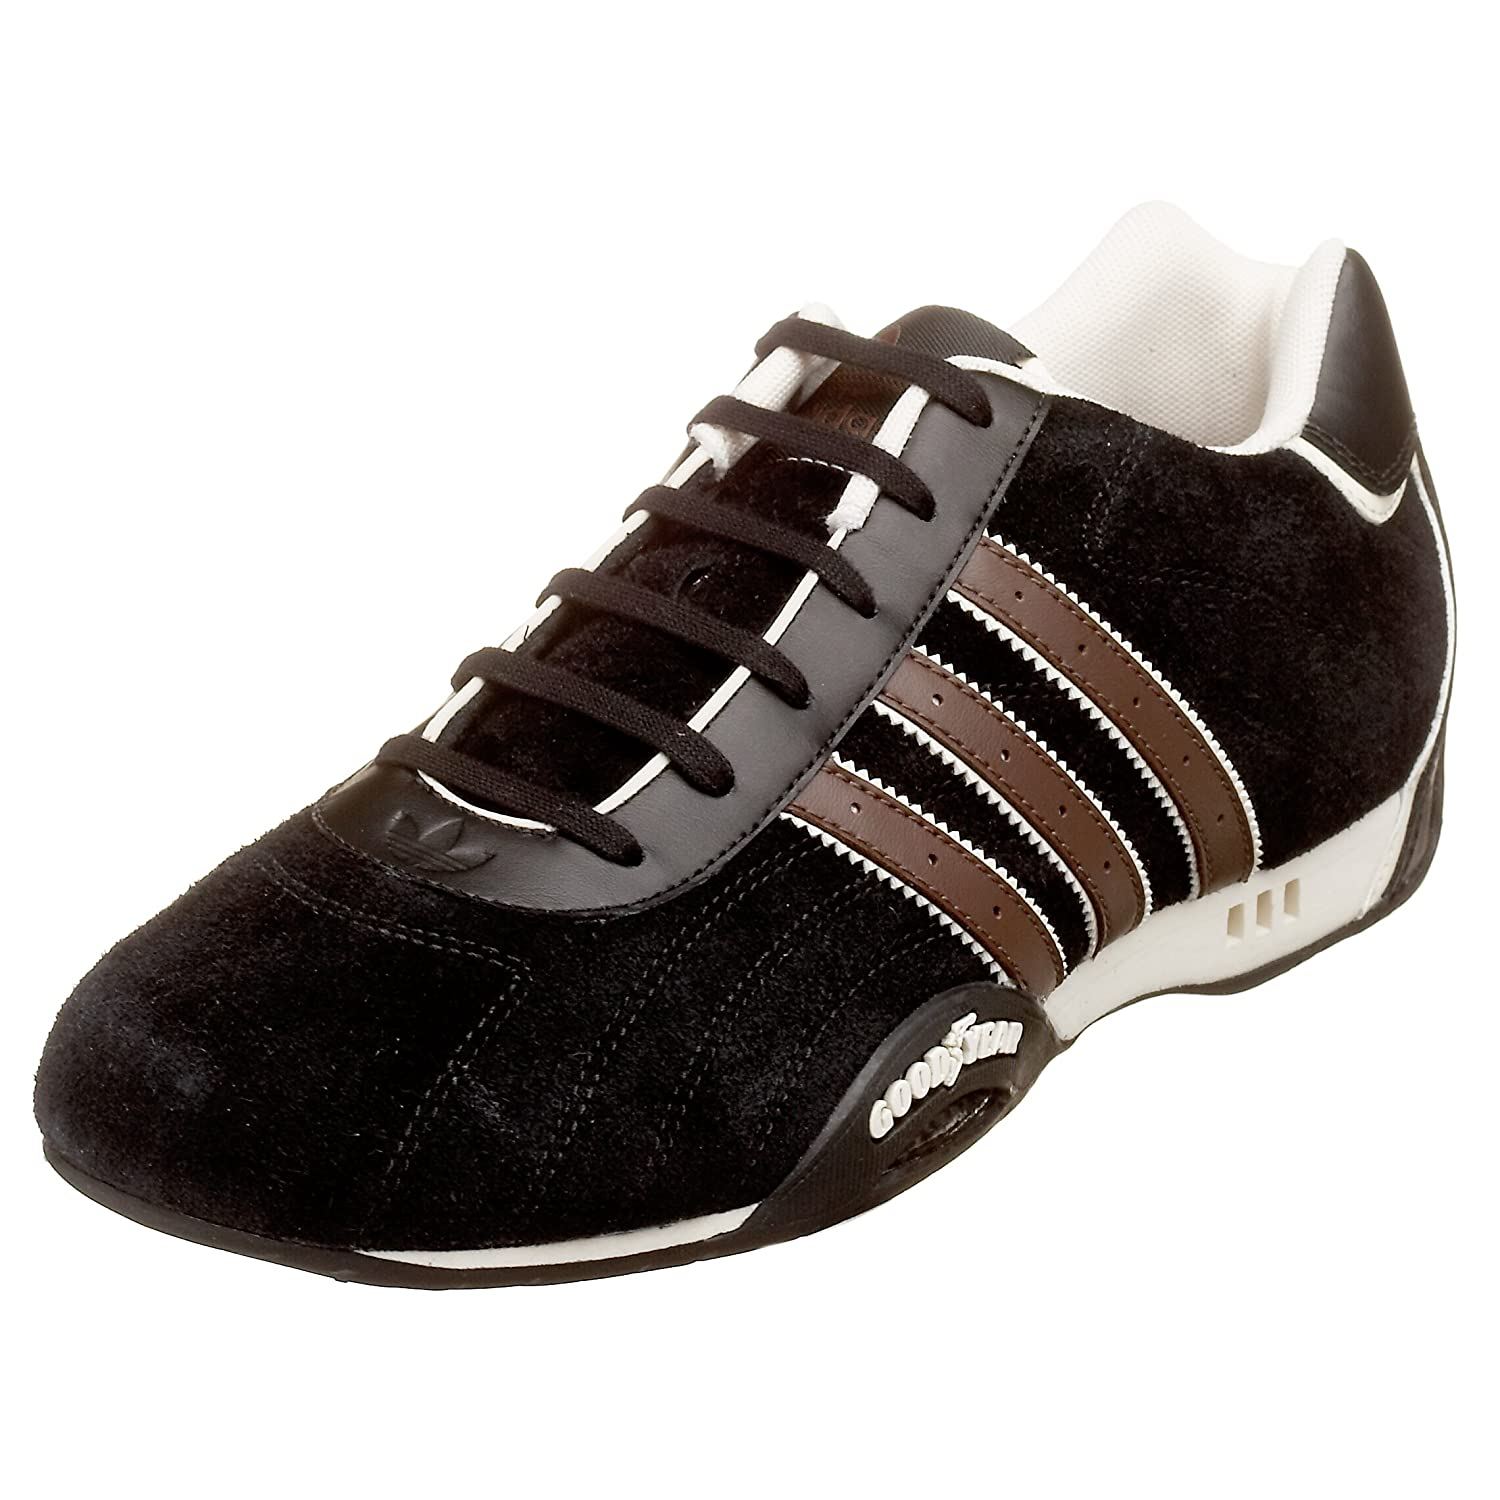 Buy cheap adidas driving shoes >Up to OFF52% DiscountDiscounts